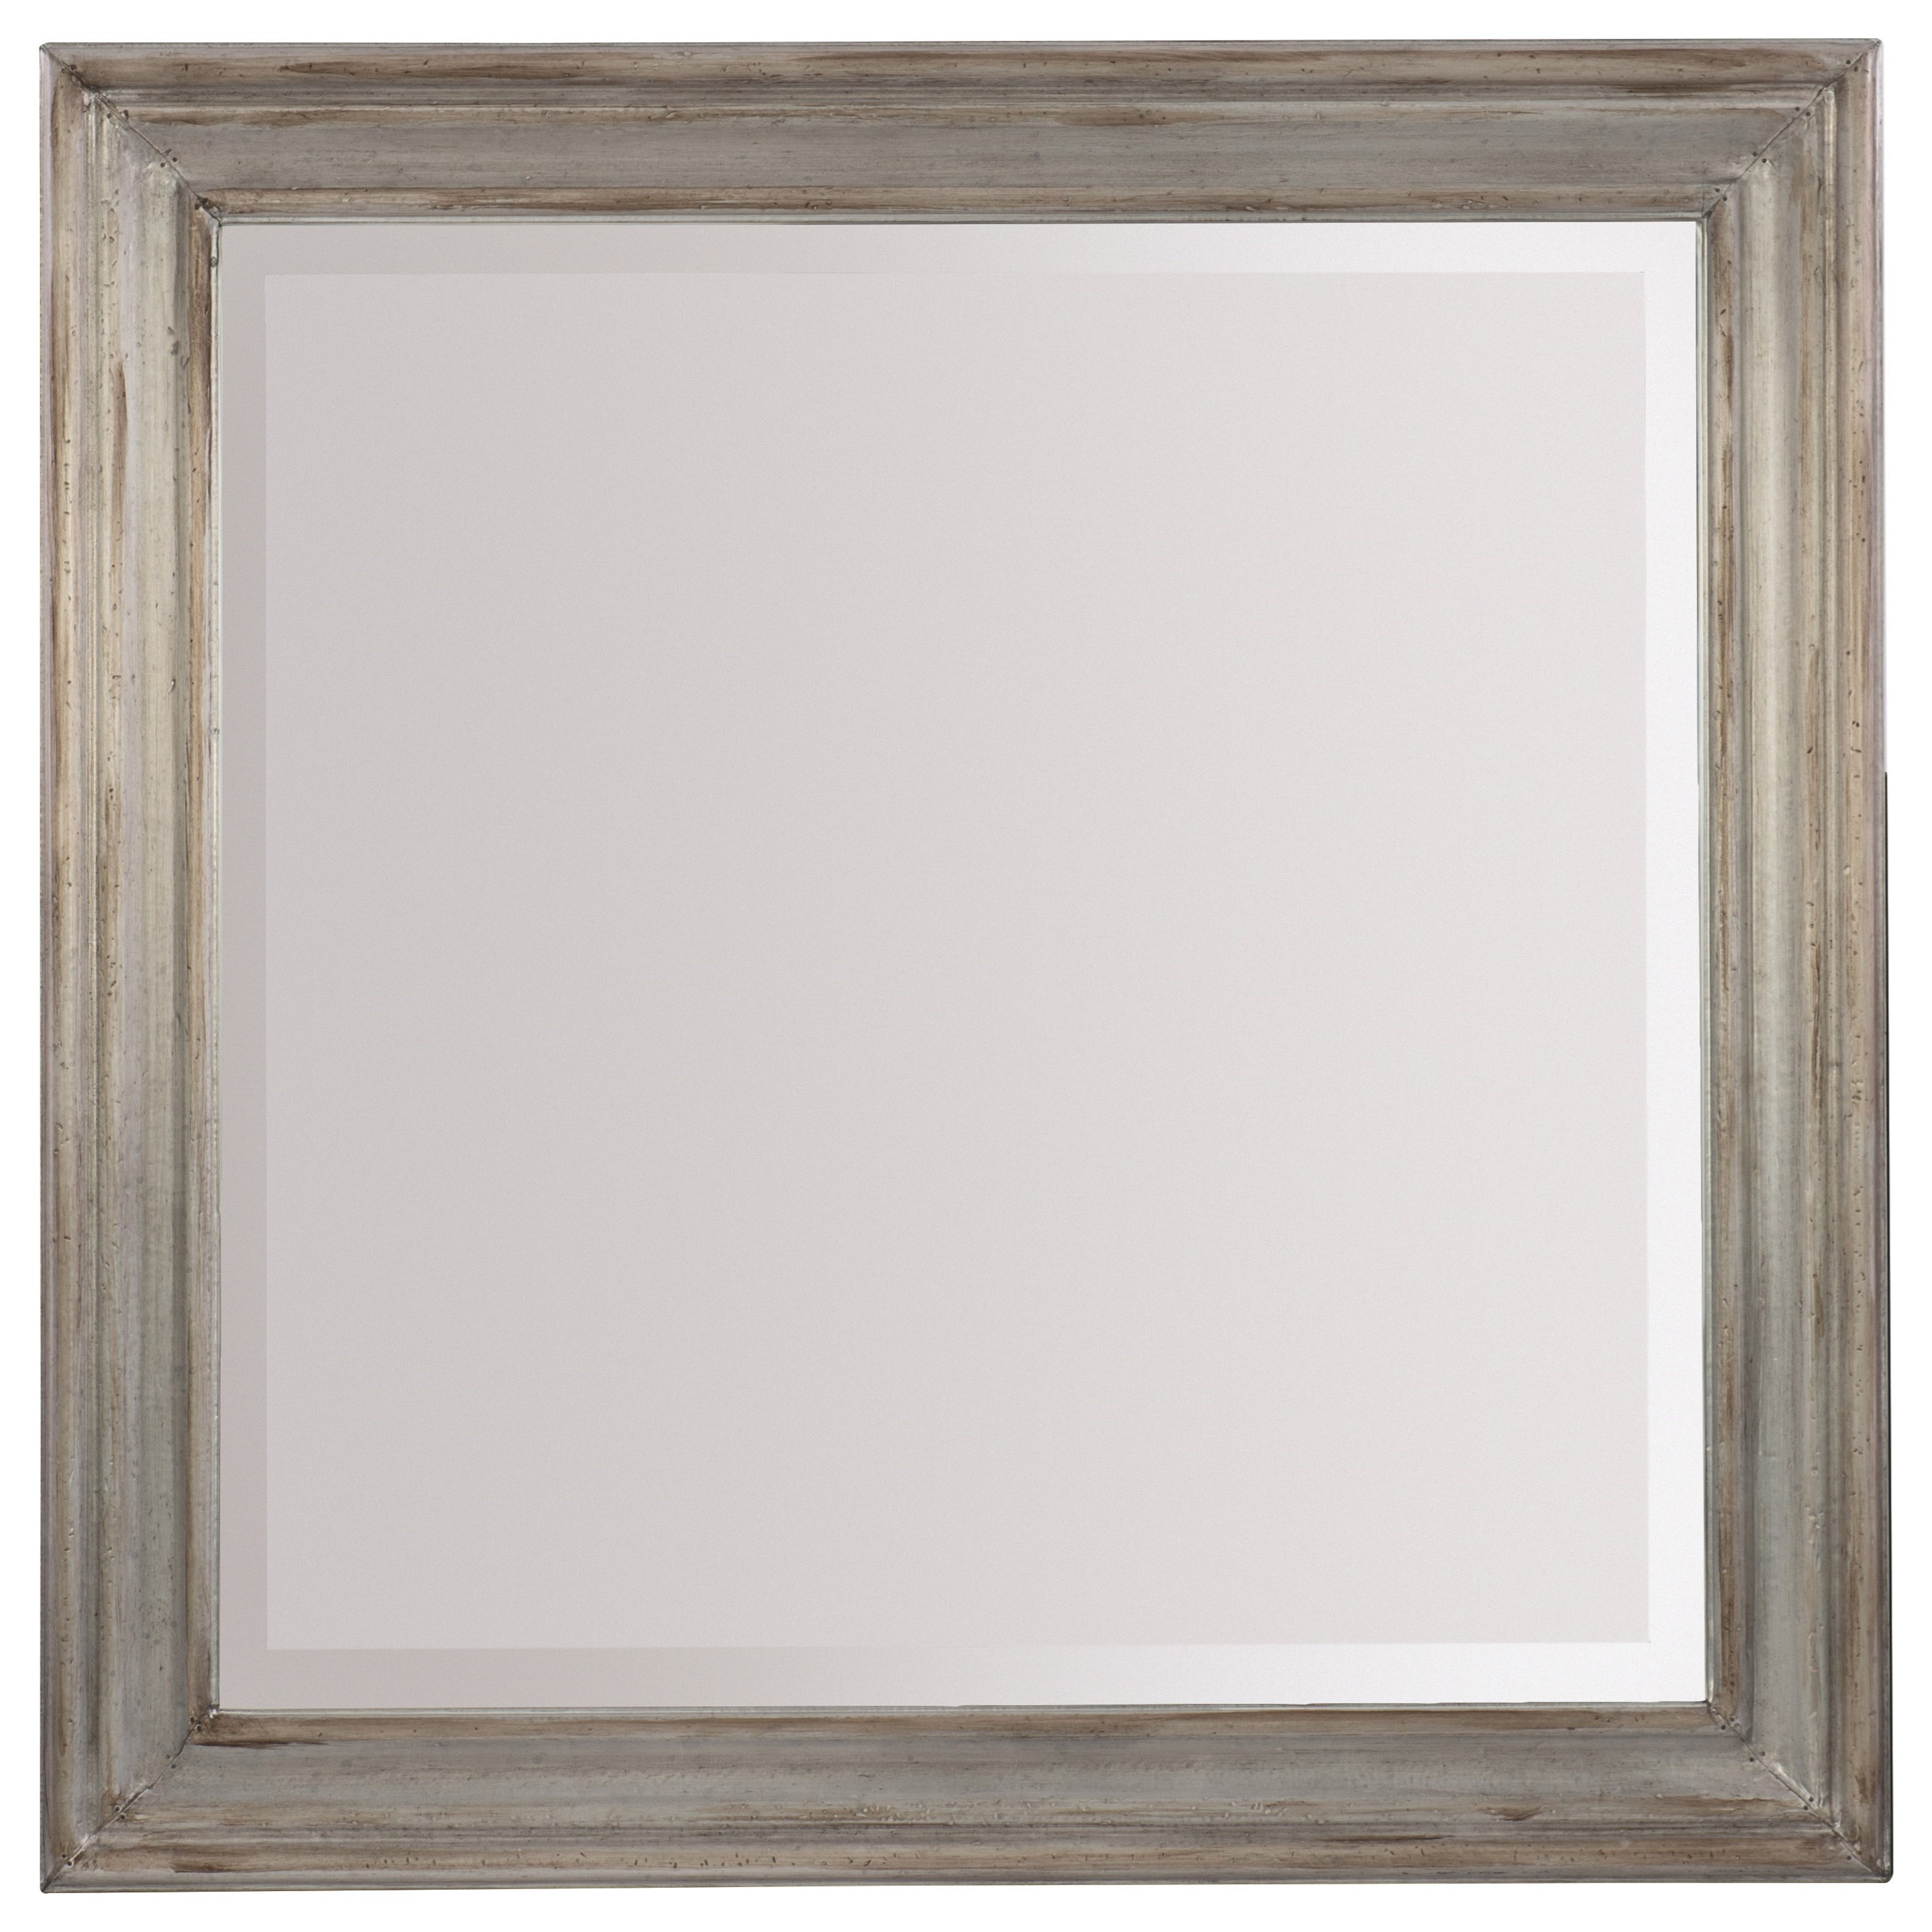 Hooker Furniture Arabella Landscape Mirror - Item Number: 1610-90008-MTL